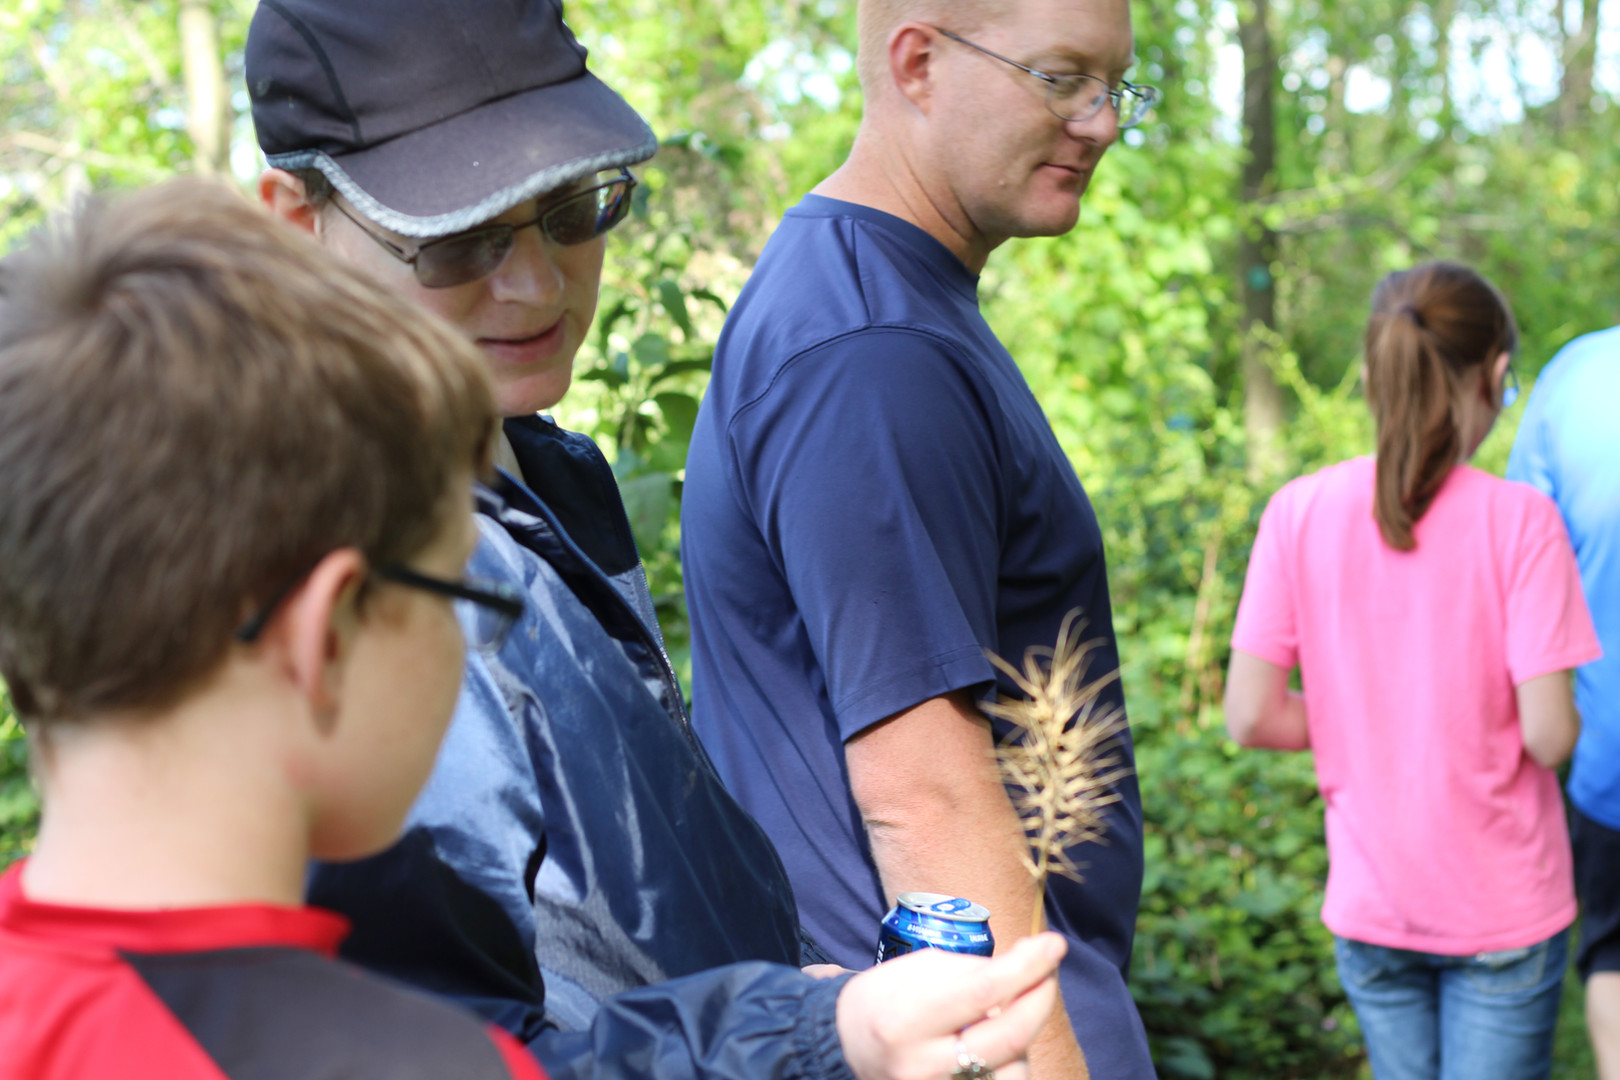 Visitors discuss the species of grass found at Androne Woods, during a Guided Hike.